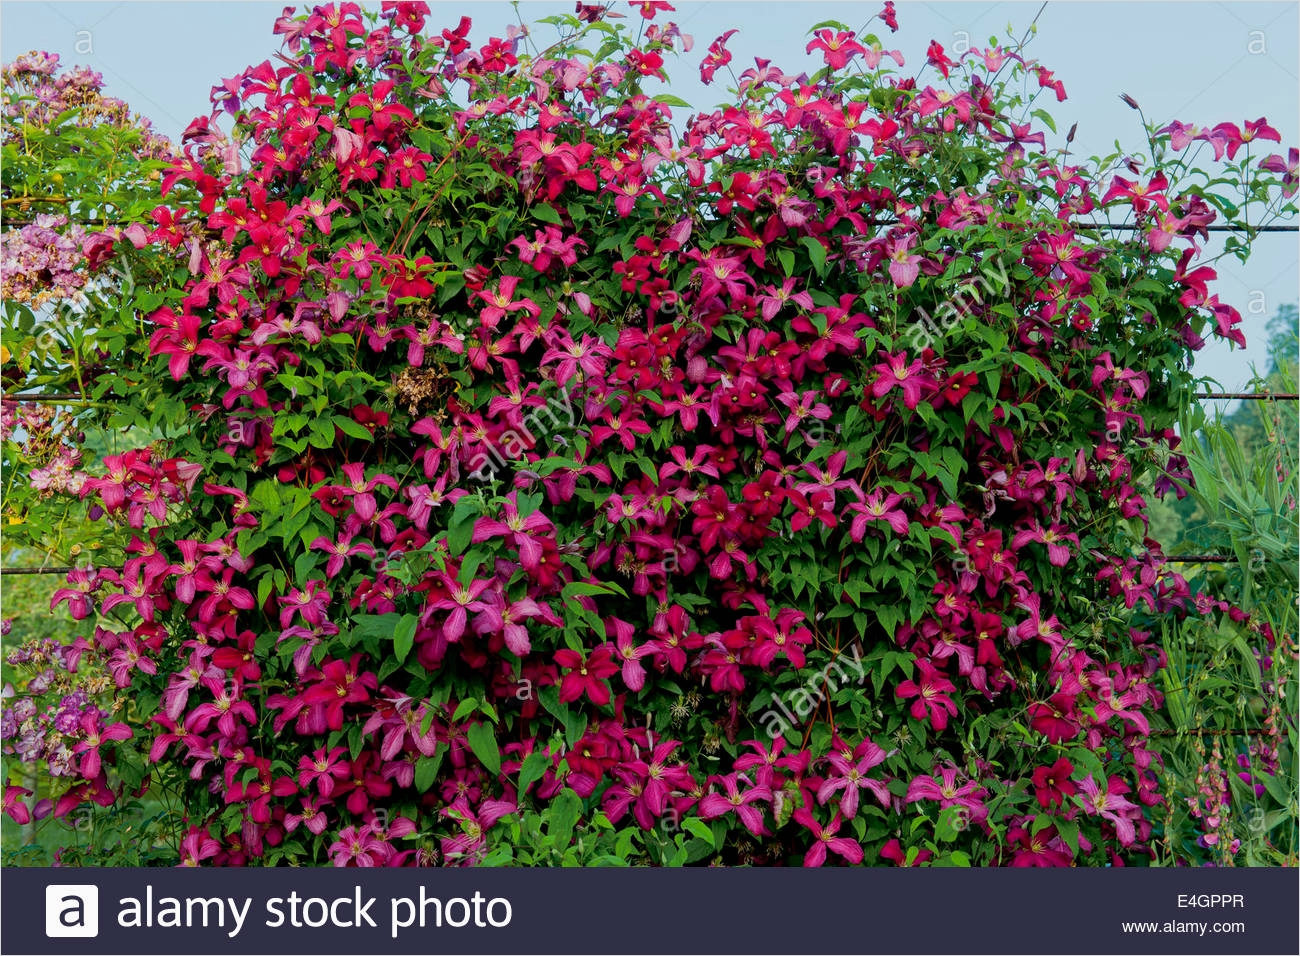 40 Best and Beautiful Climbing Flowers for Fences 98 Clematis Madame Julia Correvon Climbing Fence Divider West Dean Stock Royalty Free Image 5